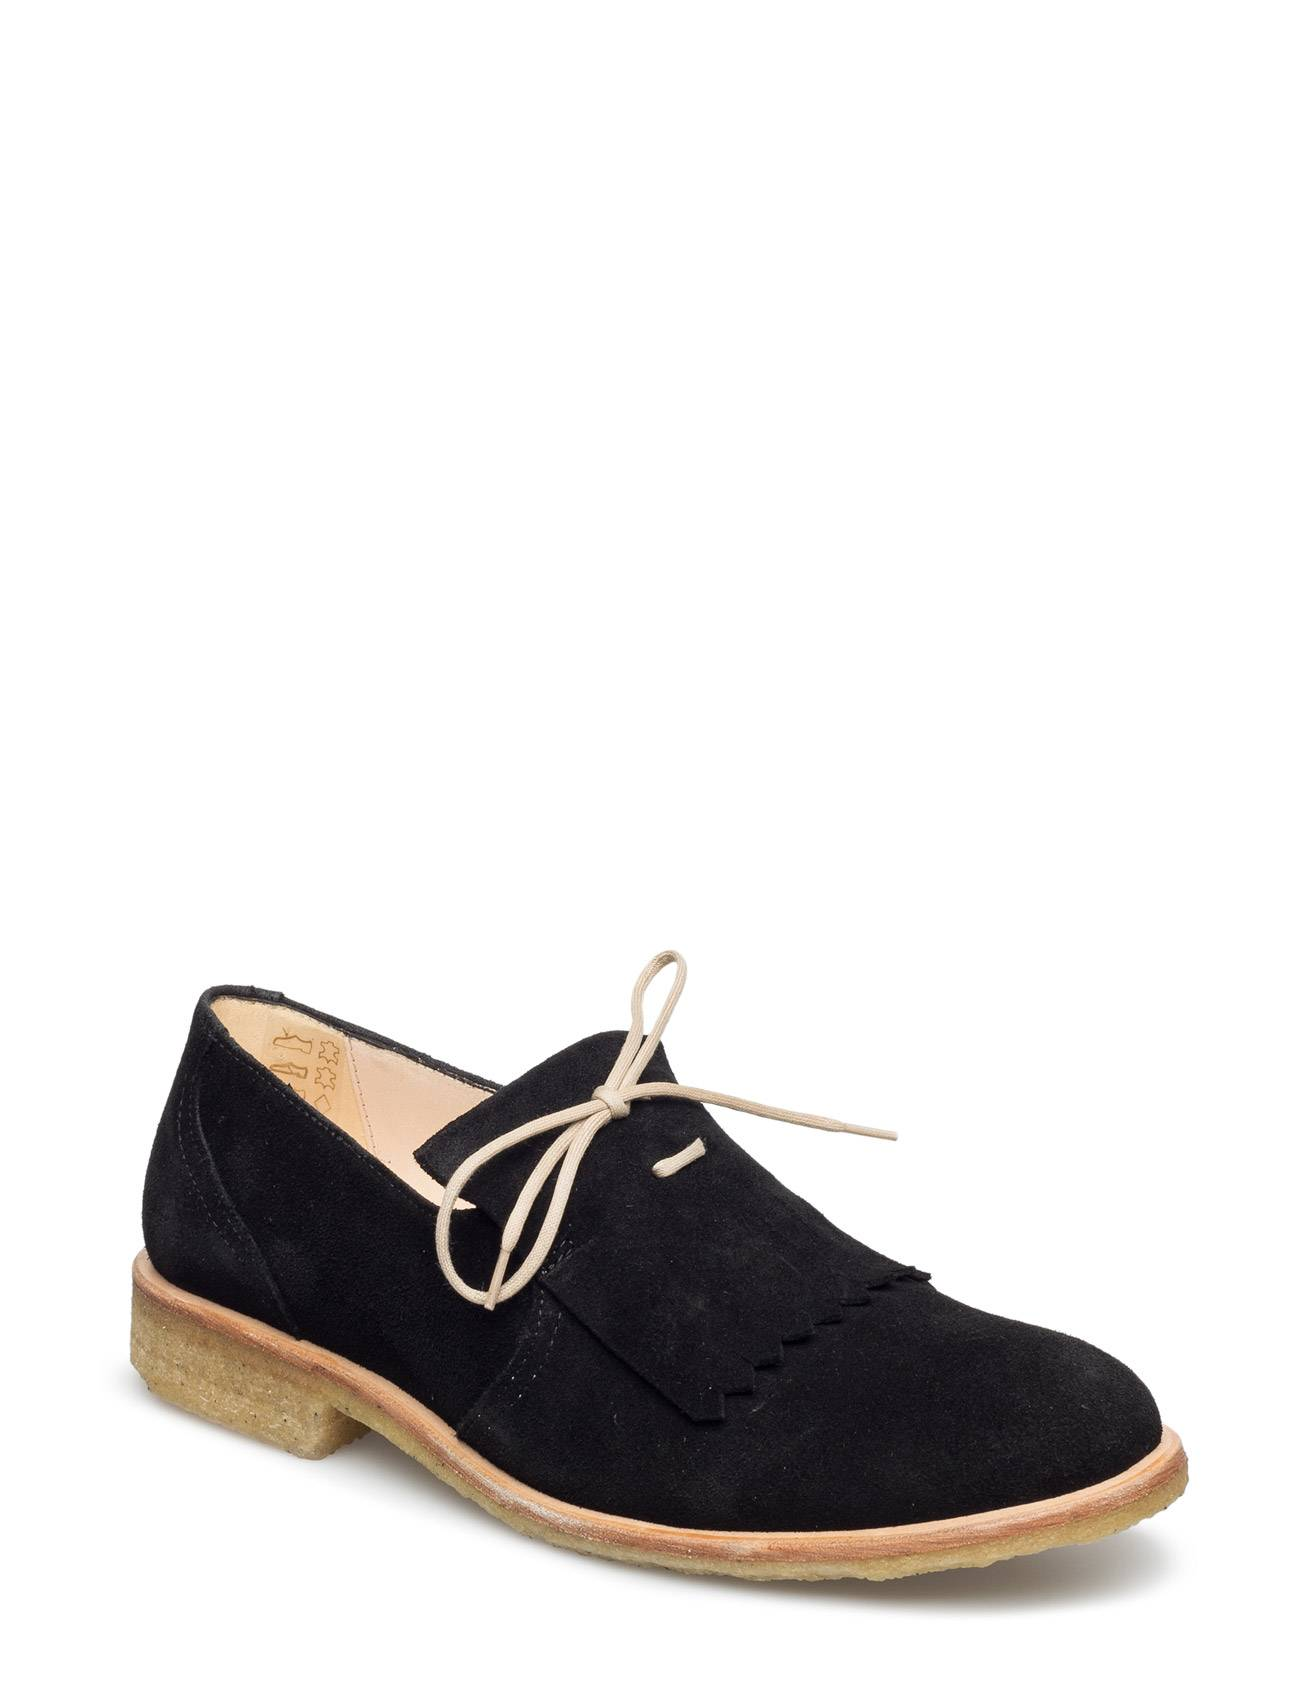 ANGULUS Shoes - Flat - With Lace